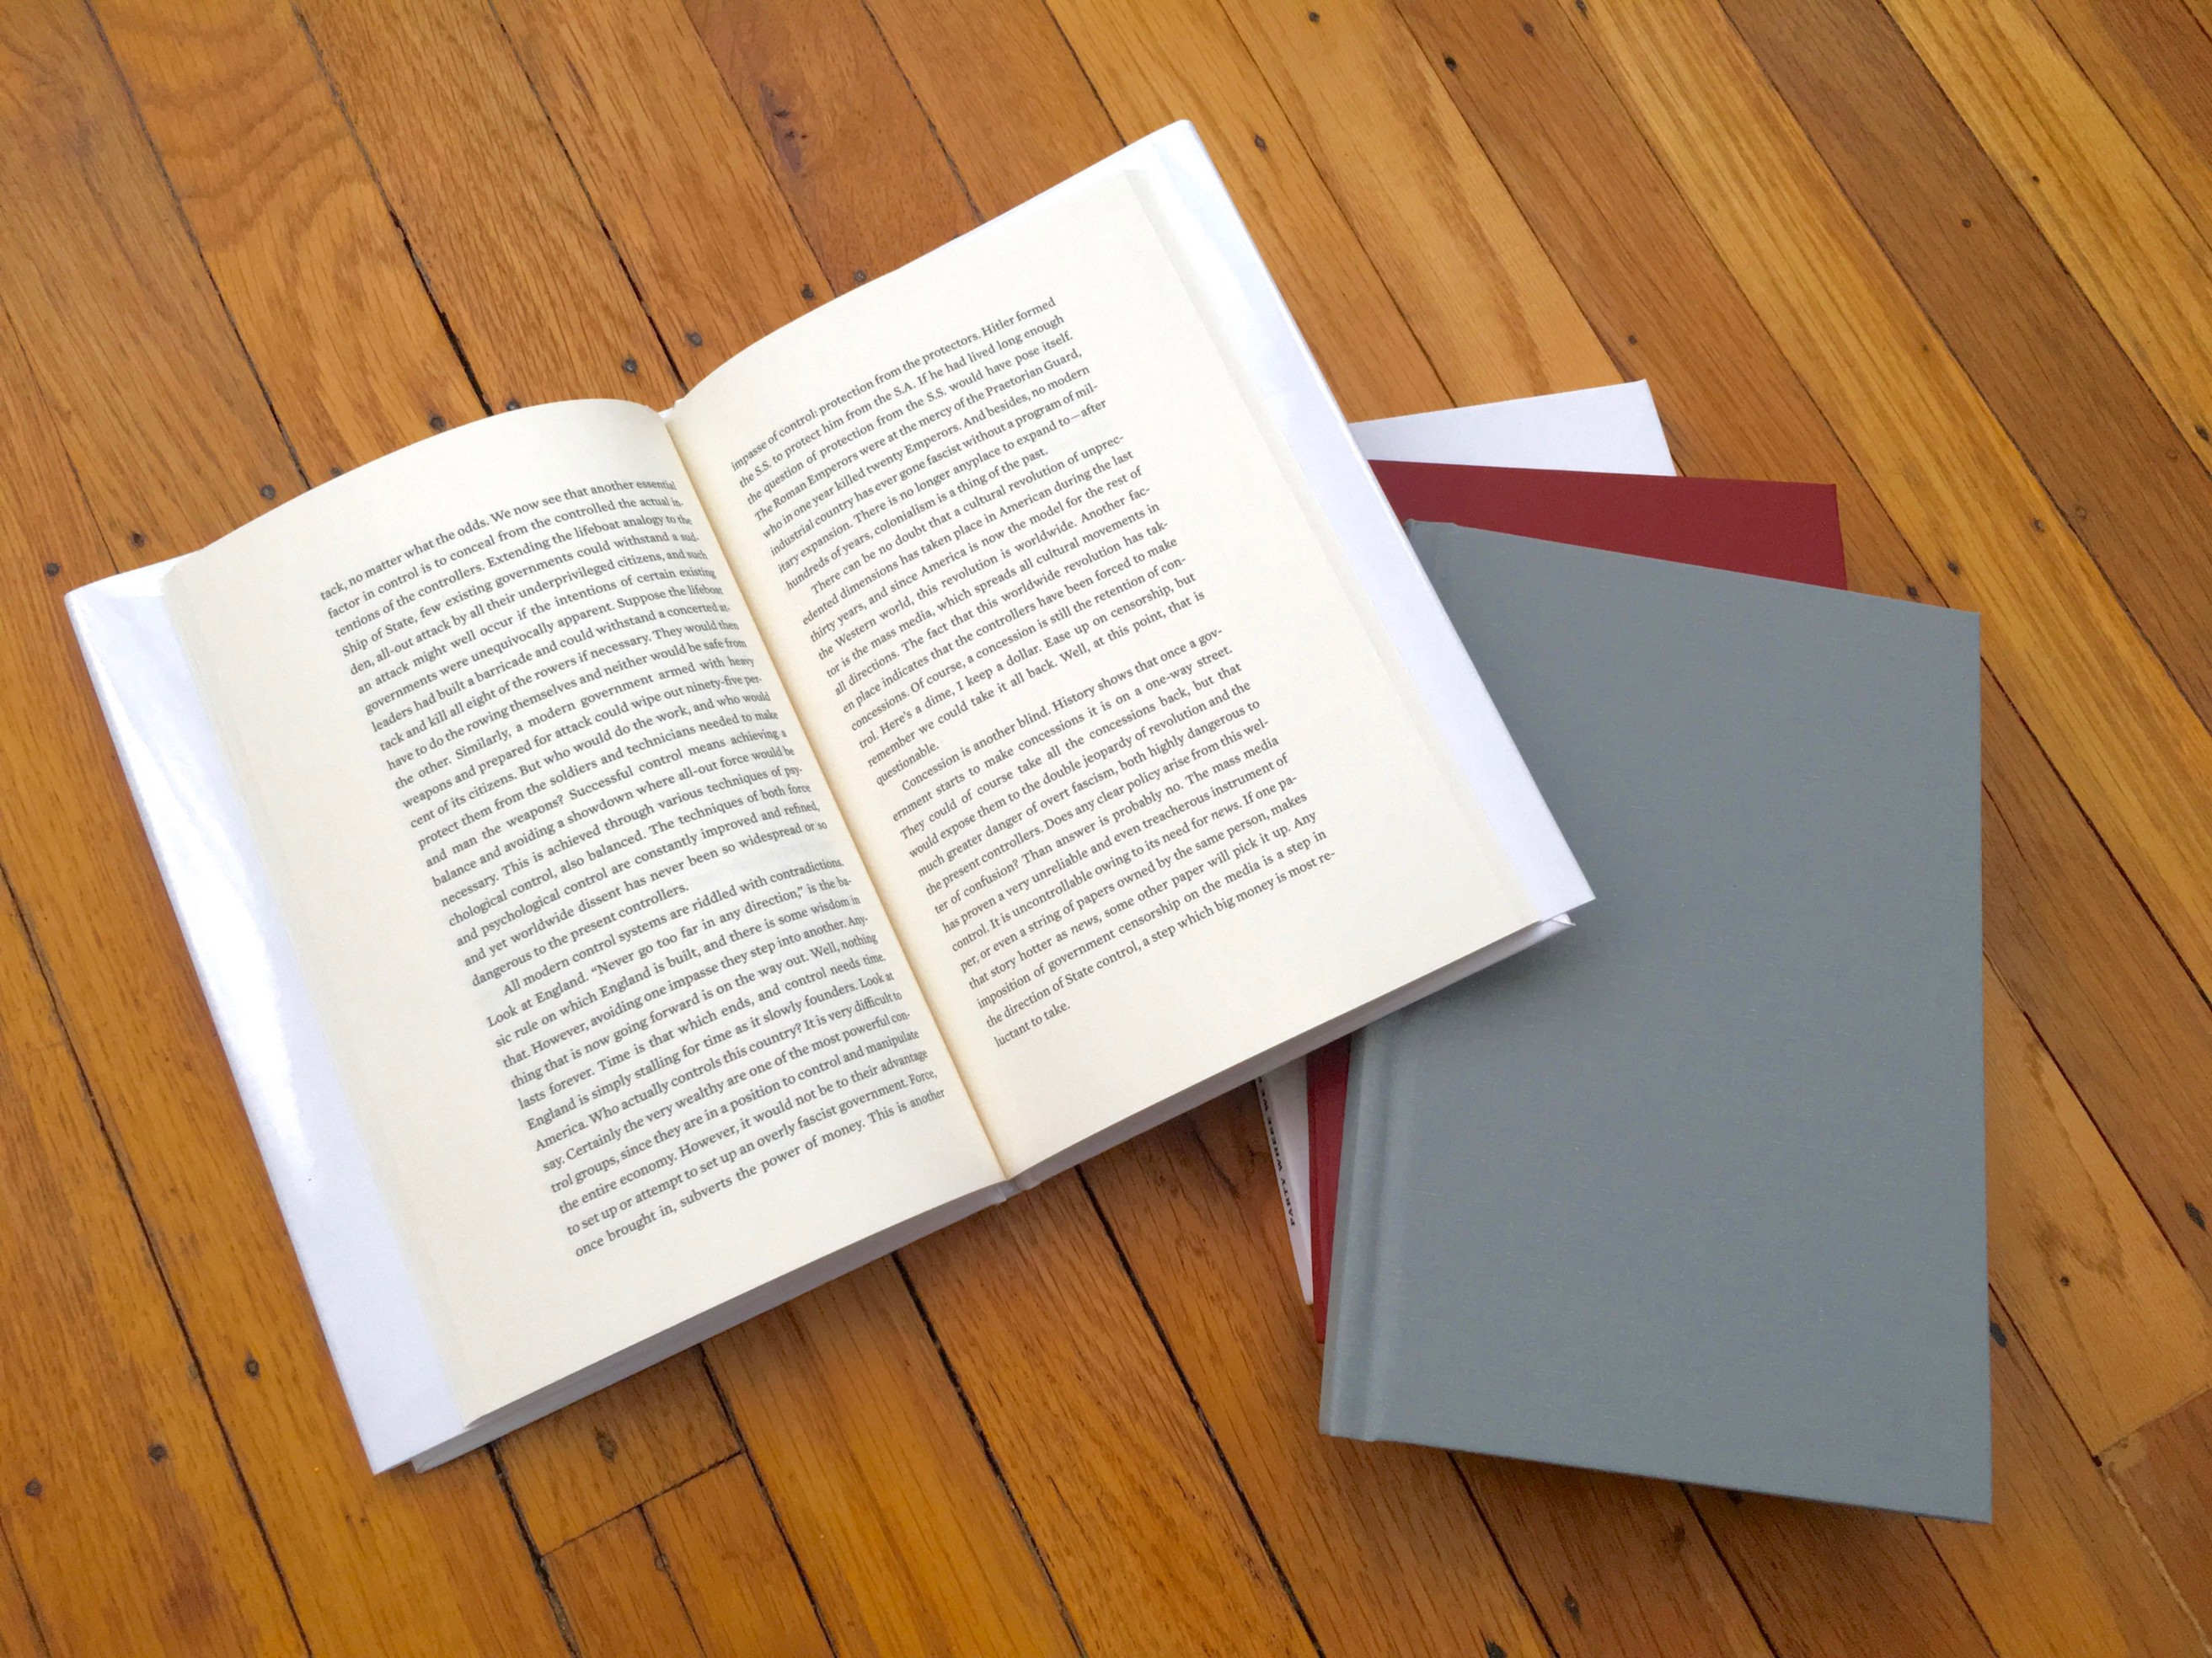 My experiences printing a small batch of books - Marcin Wichary - Medium